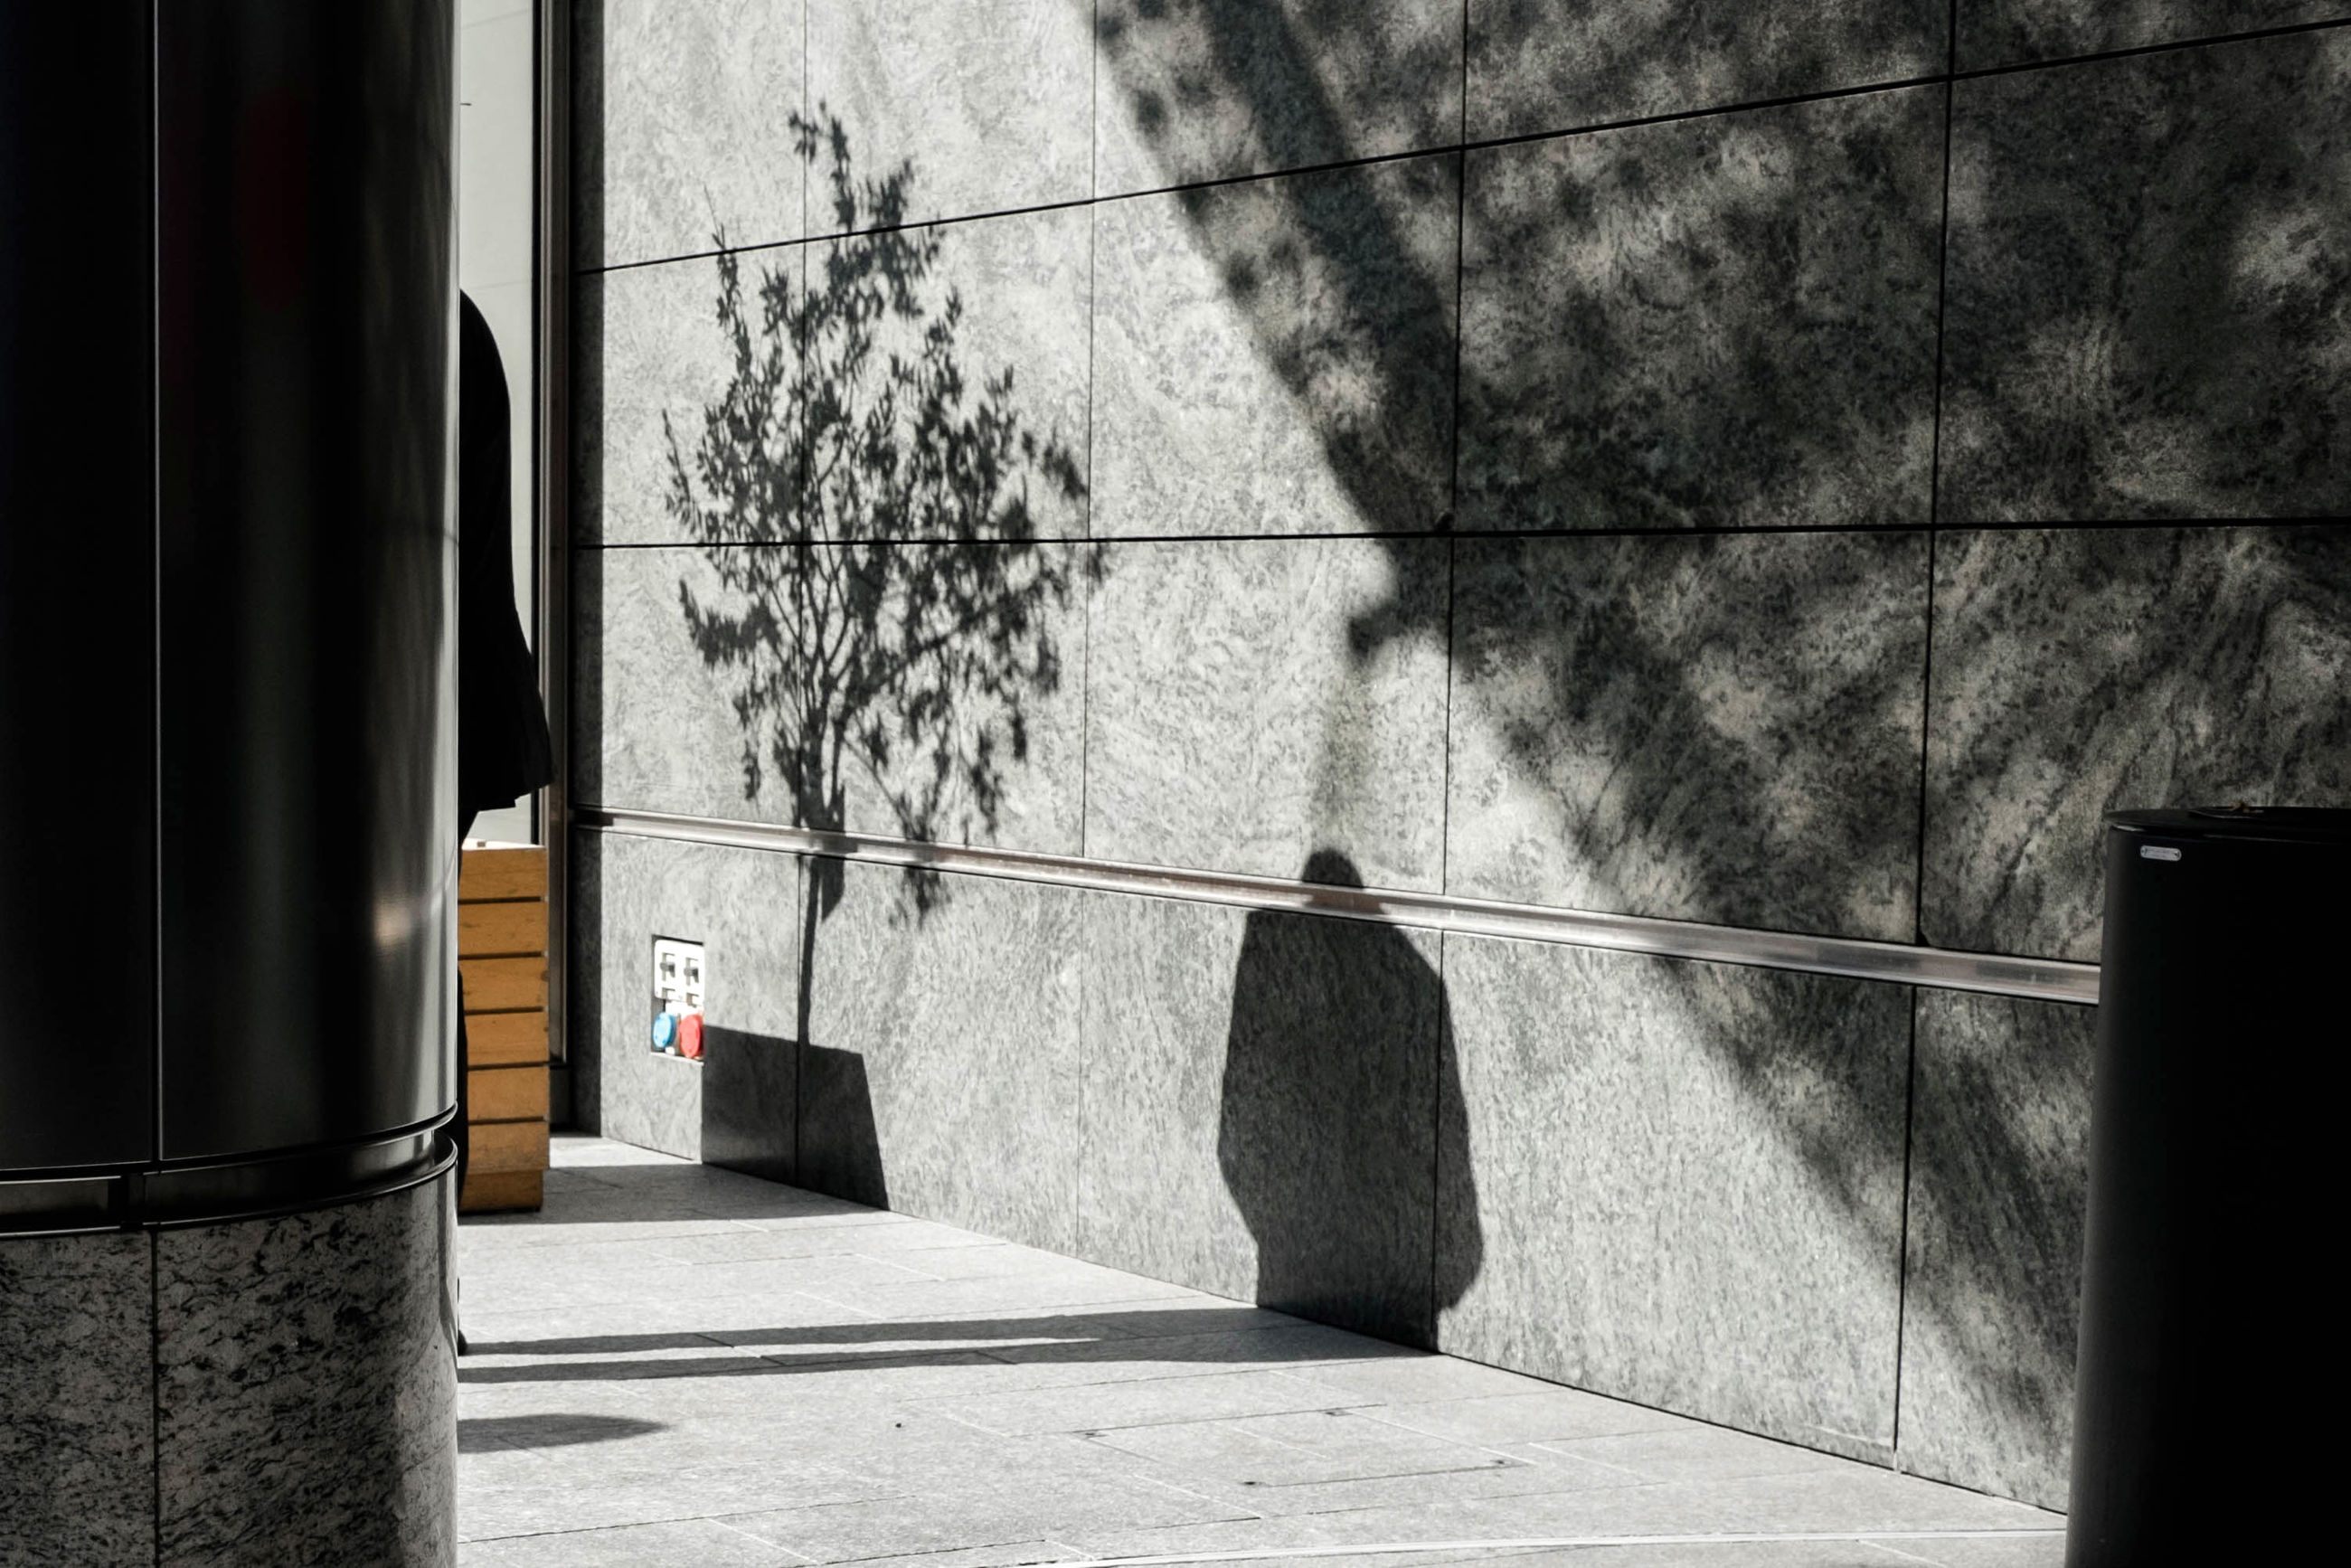 architecture, built structure, wall - building feature, tree, sunlight, plant, nature, day, shadow, no people, building exterior, outdoors, wall, railing, window, building, cable, hanging, safety, concrete